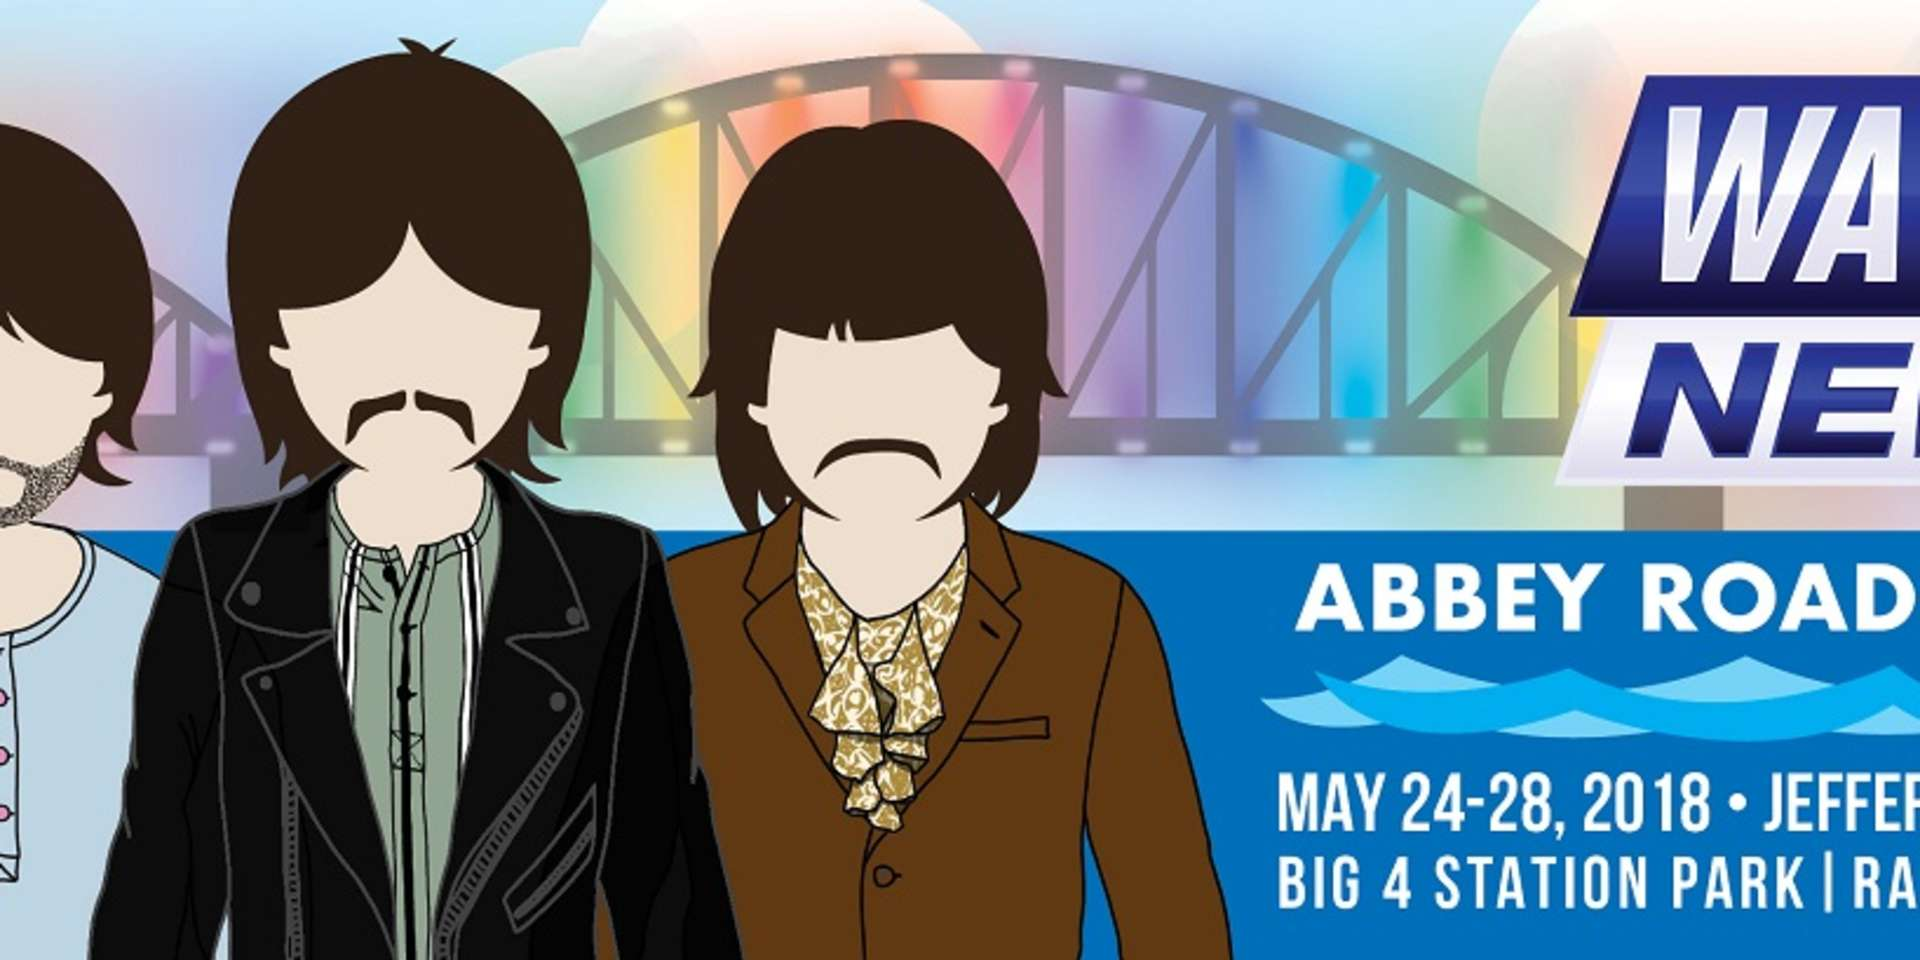 Abbey Road on the River festival 2018